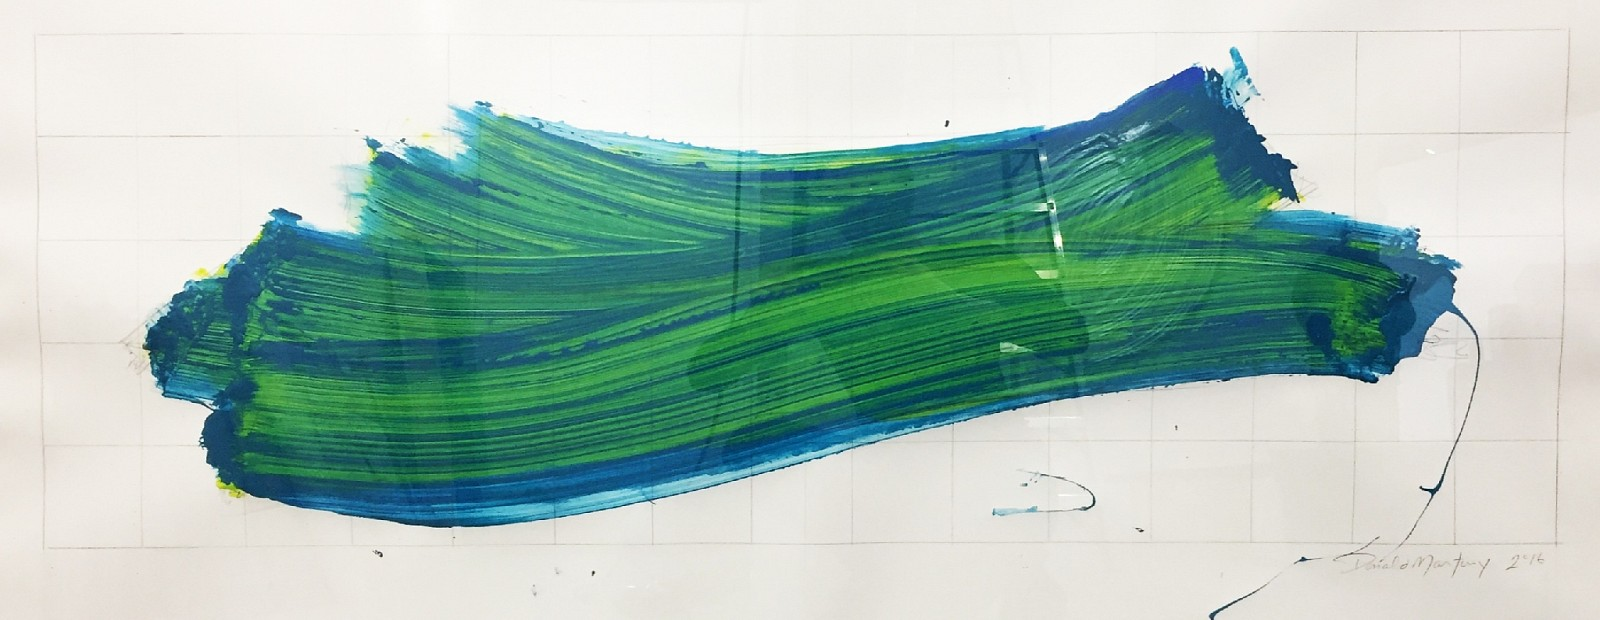 Donald Martiny ,   Untitled  ,  2016     pigment on paper ,  31 1/2 x 59 1/4 in. (80 x 150.5 cm)     blue green     MART00097